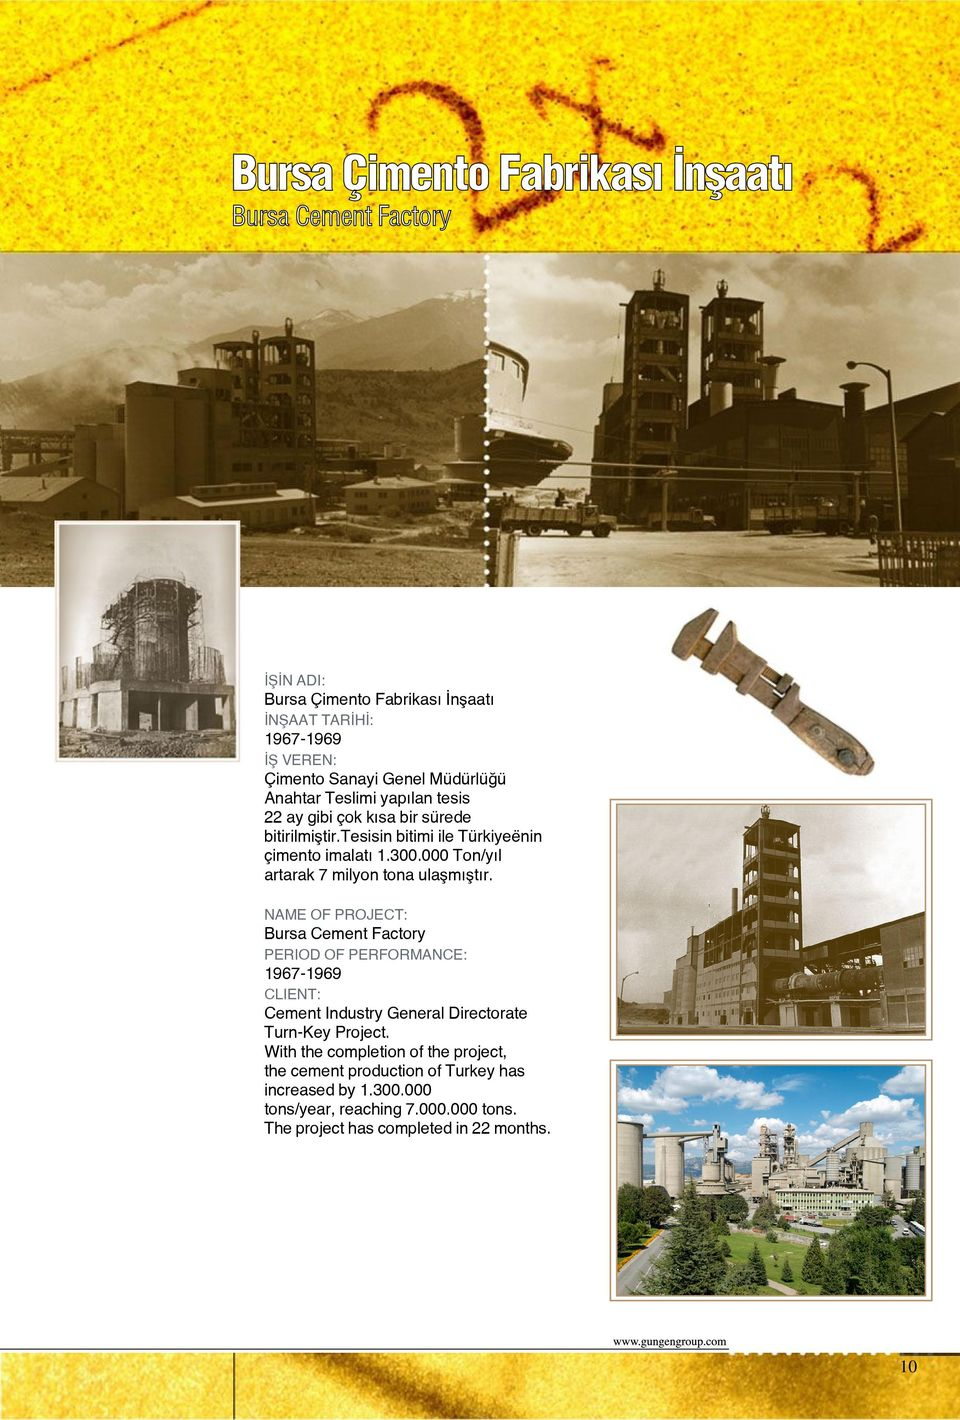 000 Ton/y l artarak 7 milyon tona ulaflm flt r. Bursa Cement Factory 1967-1969 Cement Industry General Directorate Turn-Key Project.